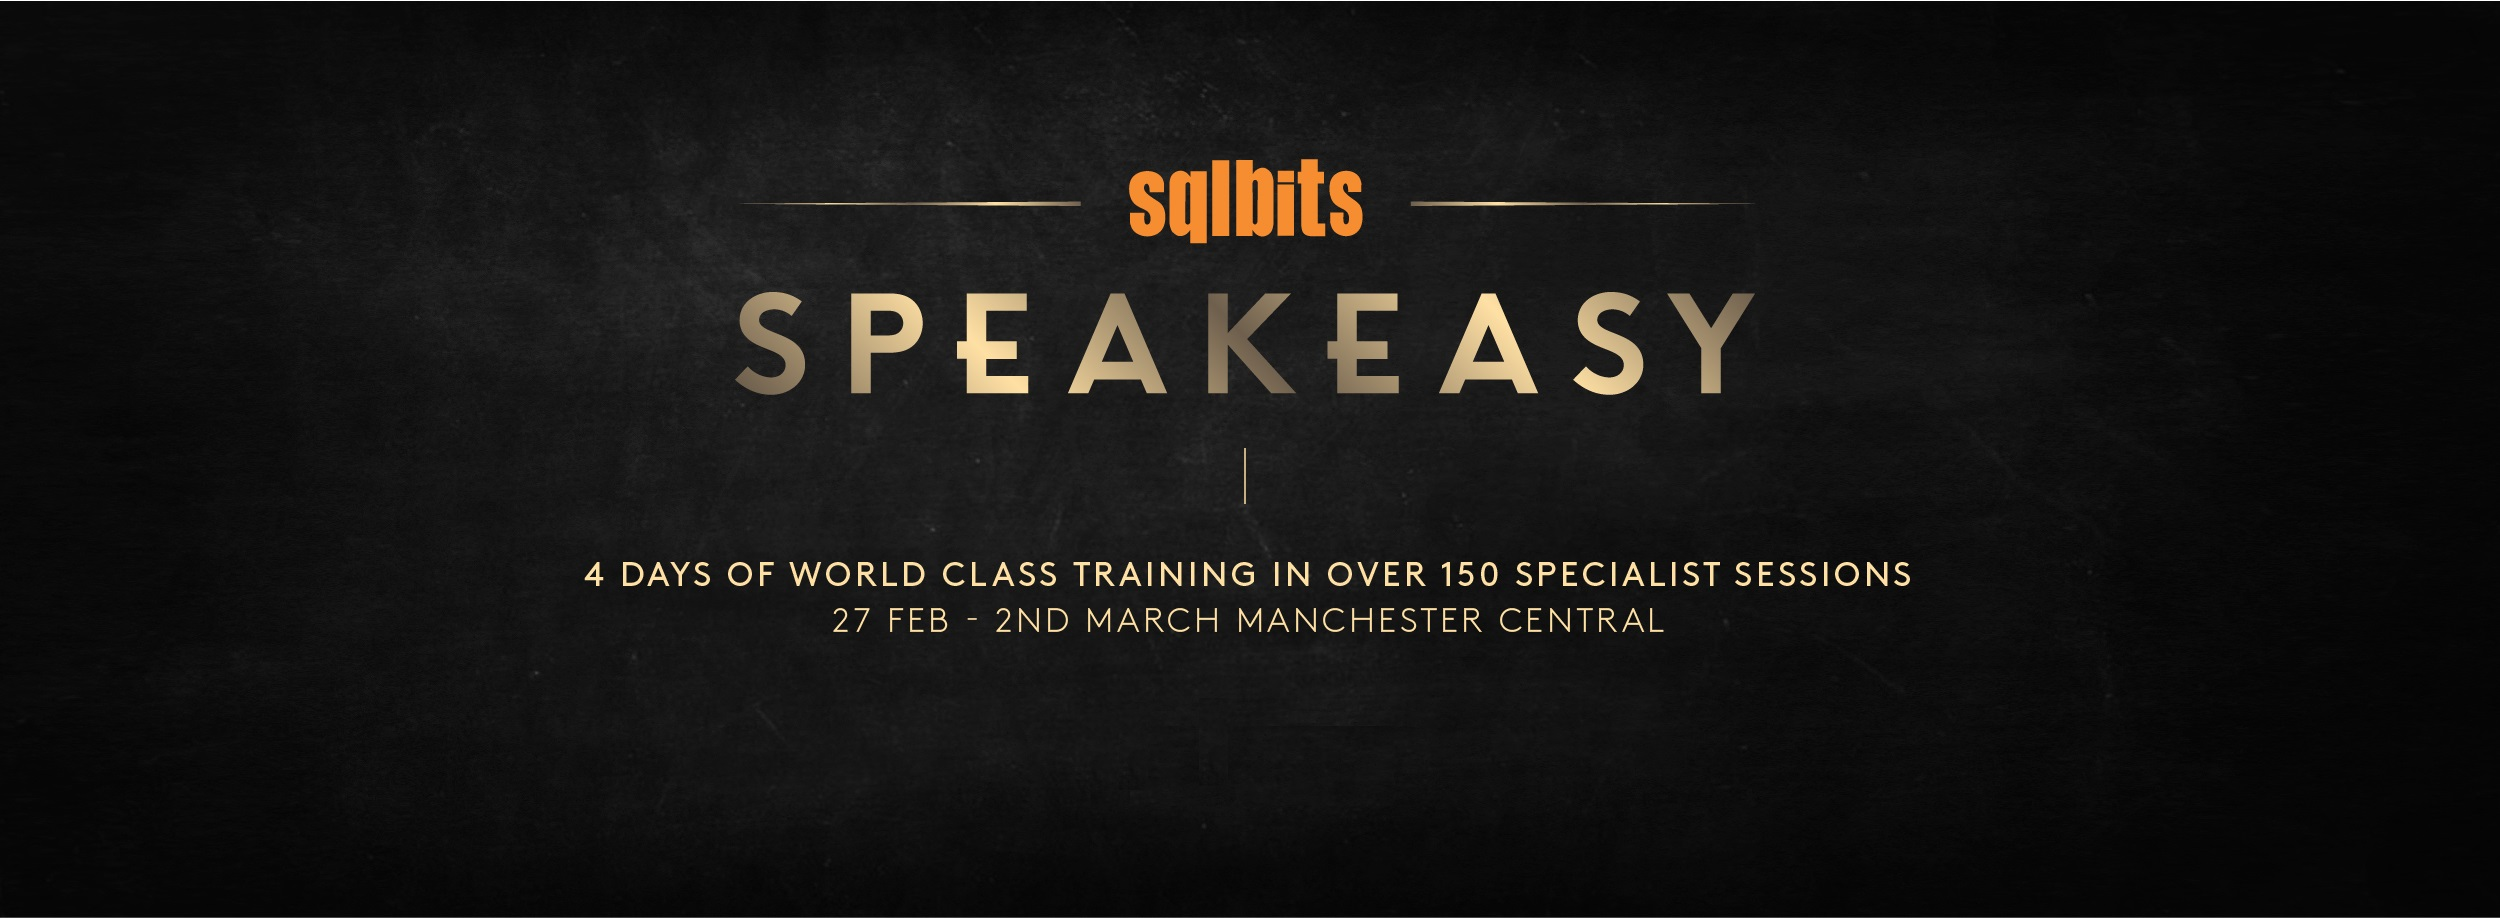 SQLBits Speakeasy Register Now